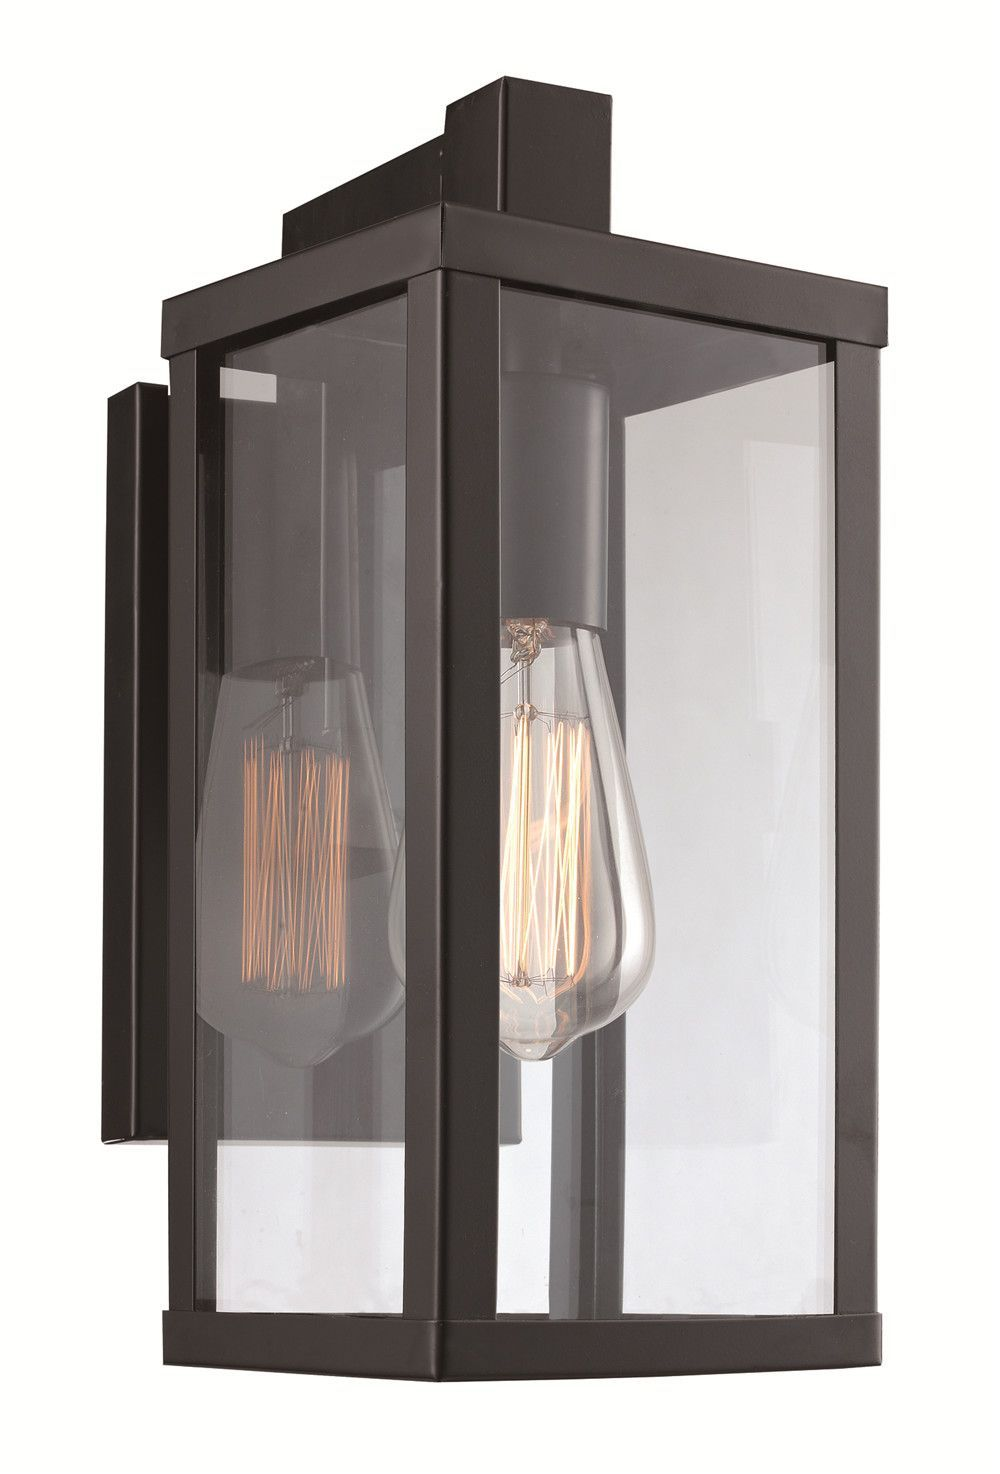 Features Black Finish Fixture Uses 1 Light Medium Base